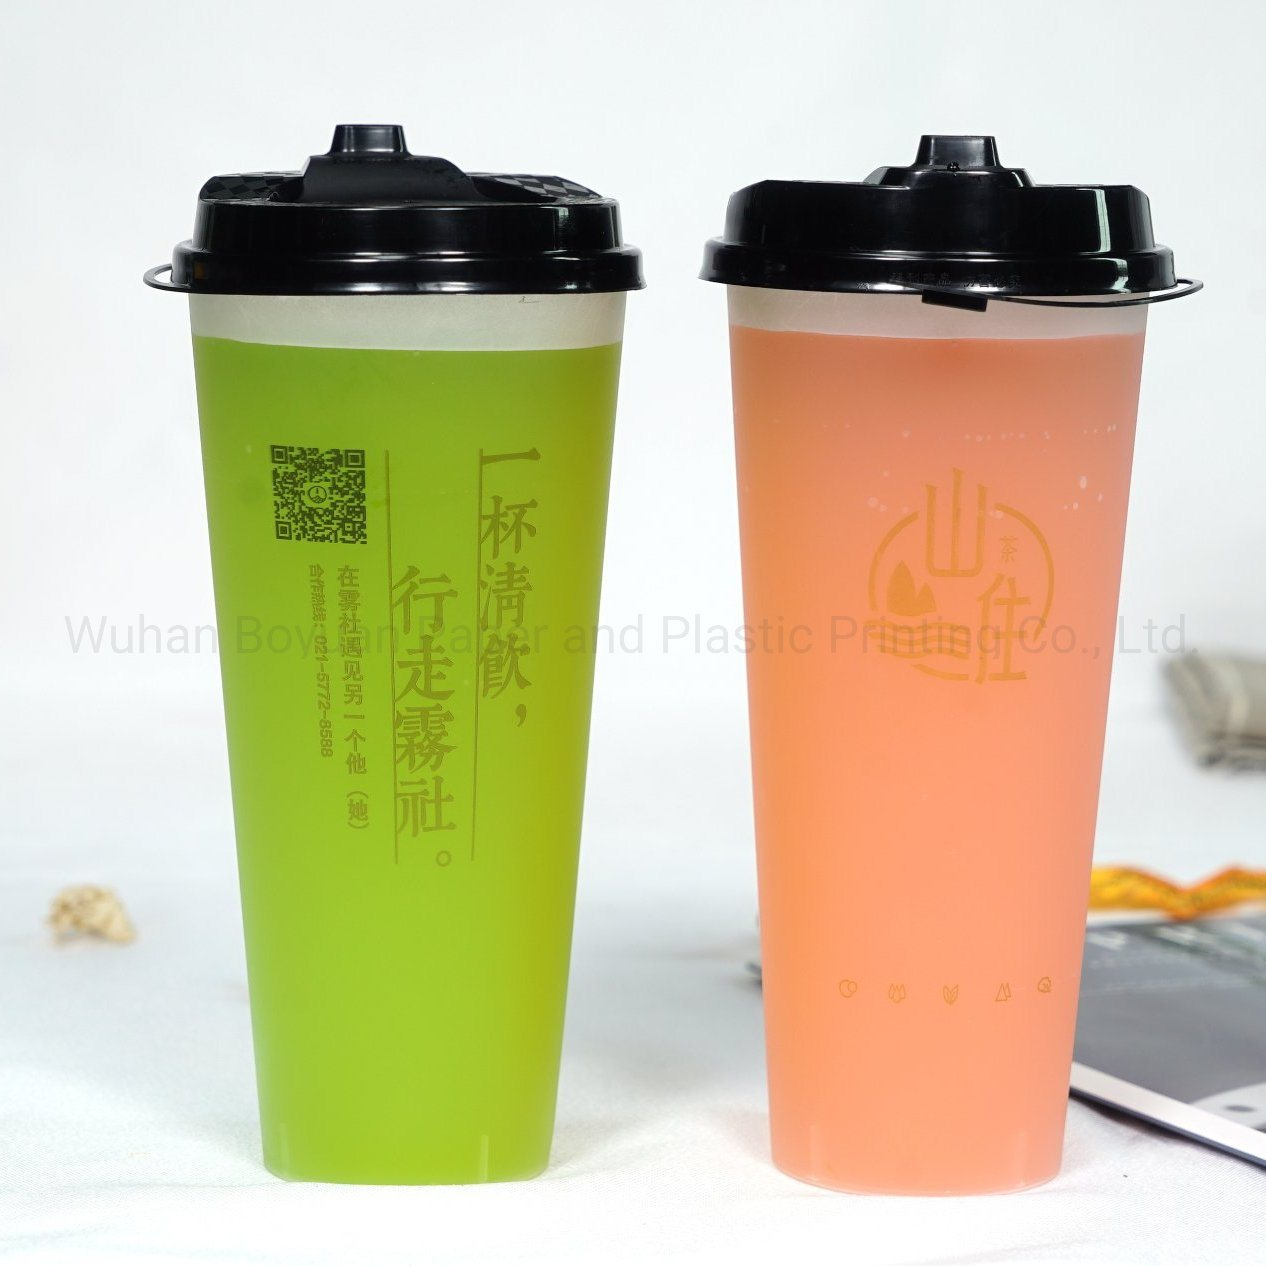 Customized Printed Disposable Plastic Cups with Lids